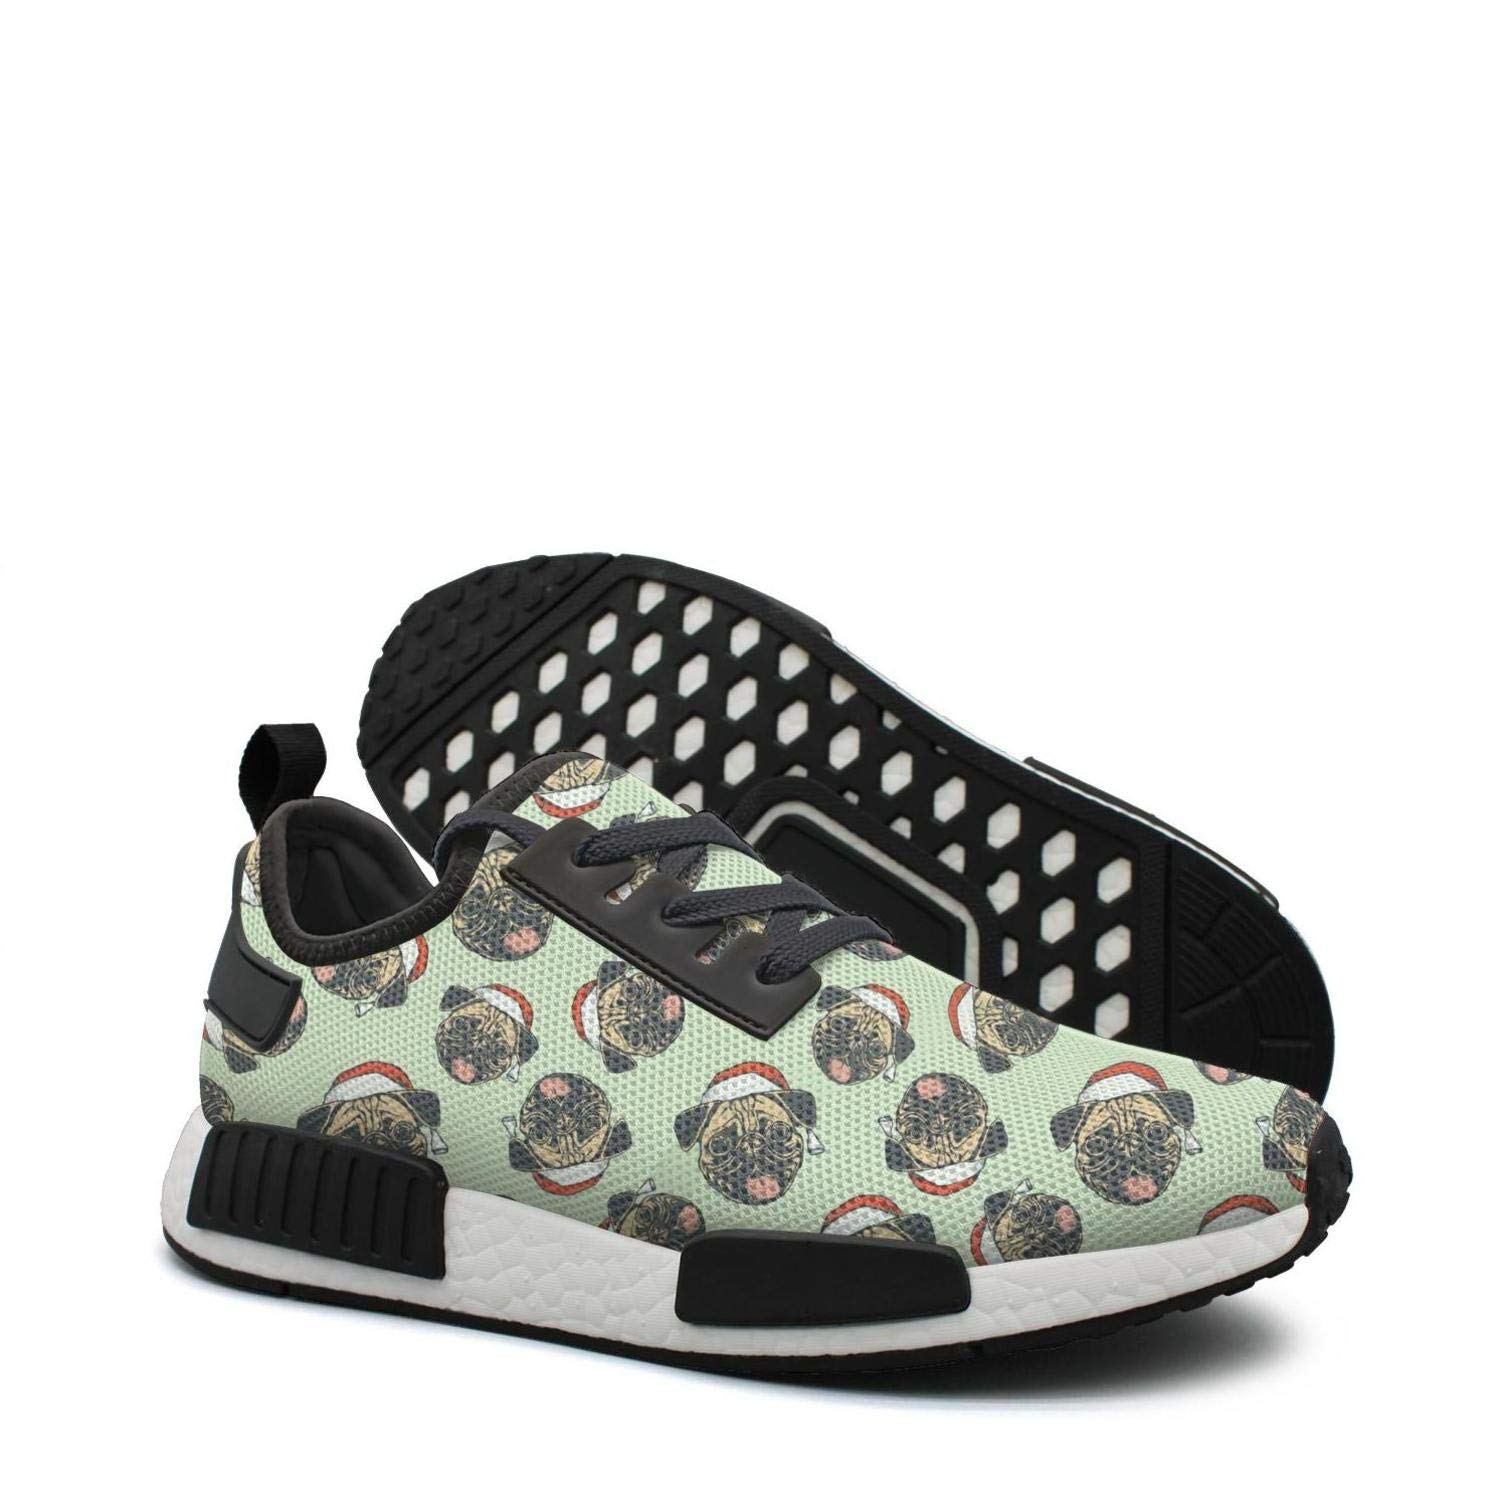 ktyyuwwww Women Colorful Camping Sneaker Pug Christmas Pug Puppies Novelty Casual Running Shoes